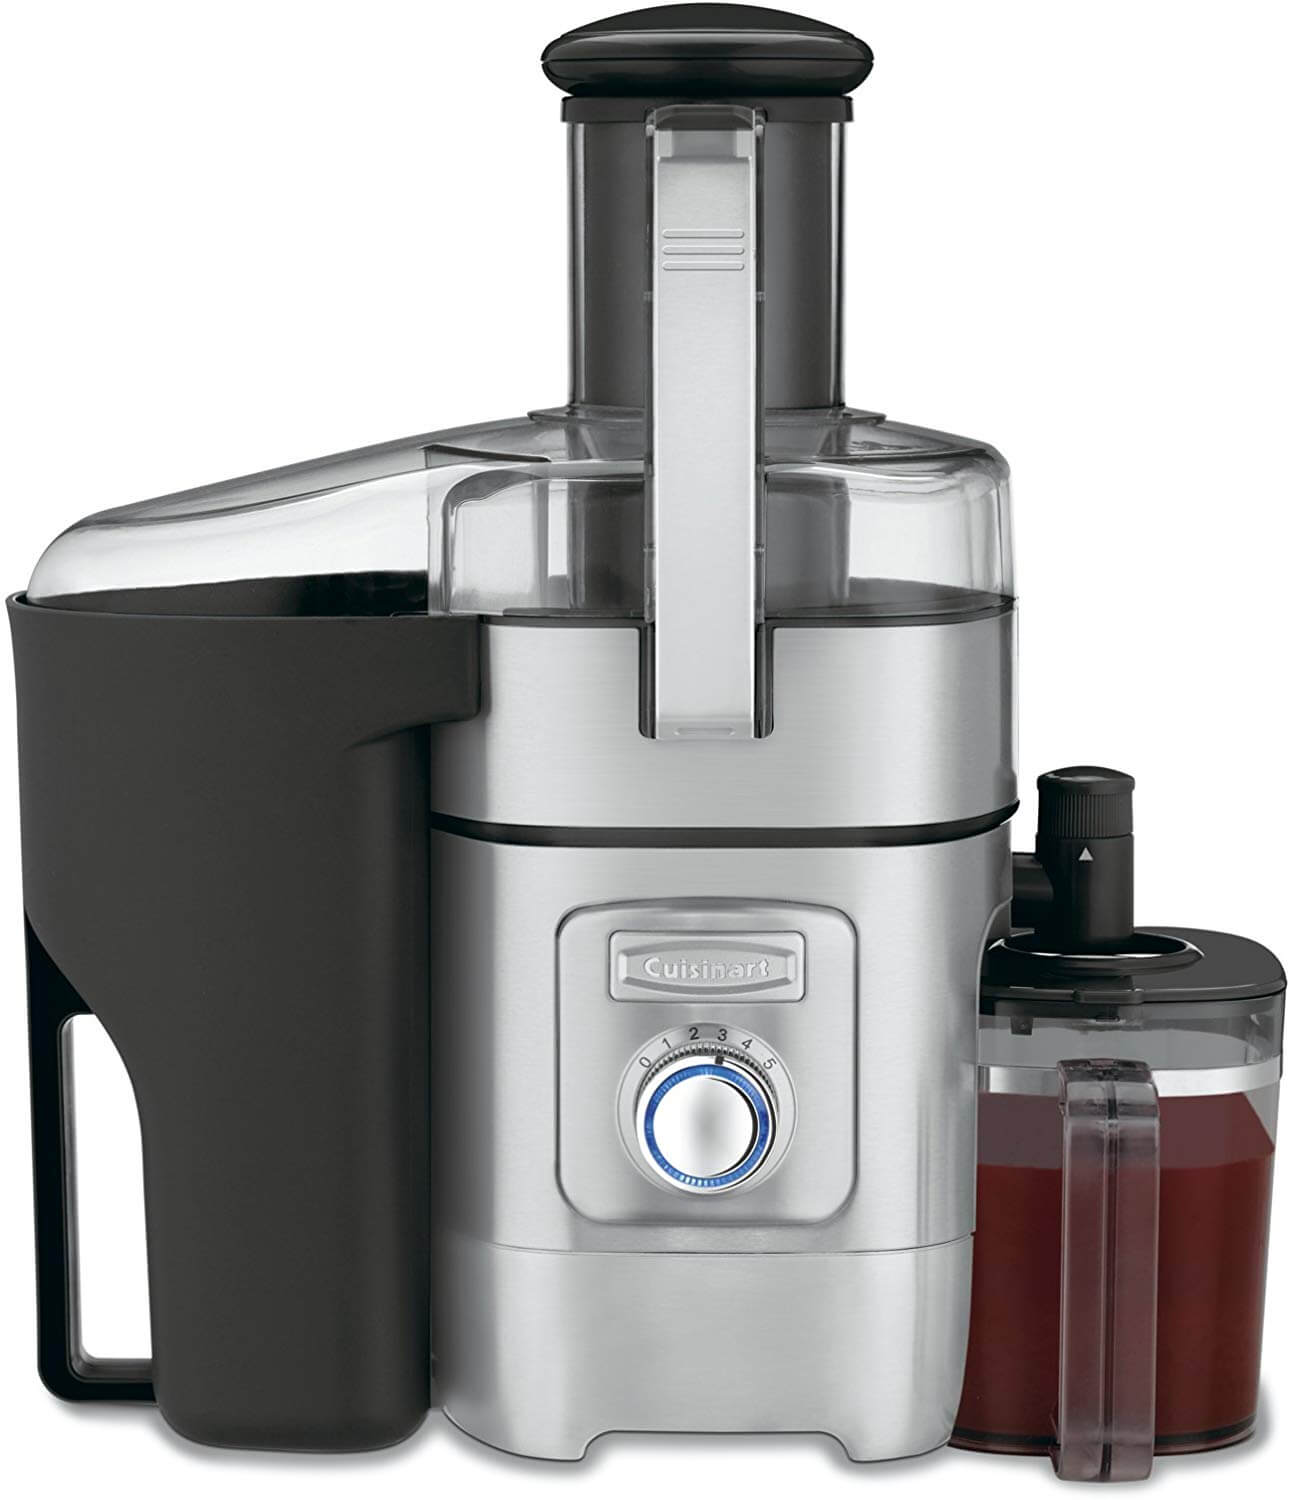 Cuisinart CJE-1000 Die cast juicer review, Best juicer for carrots and beets, Best Carrot Juicers, best beets juicers